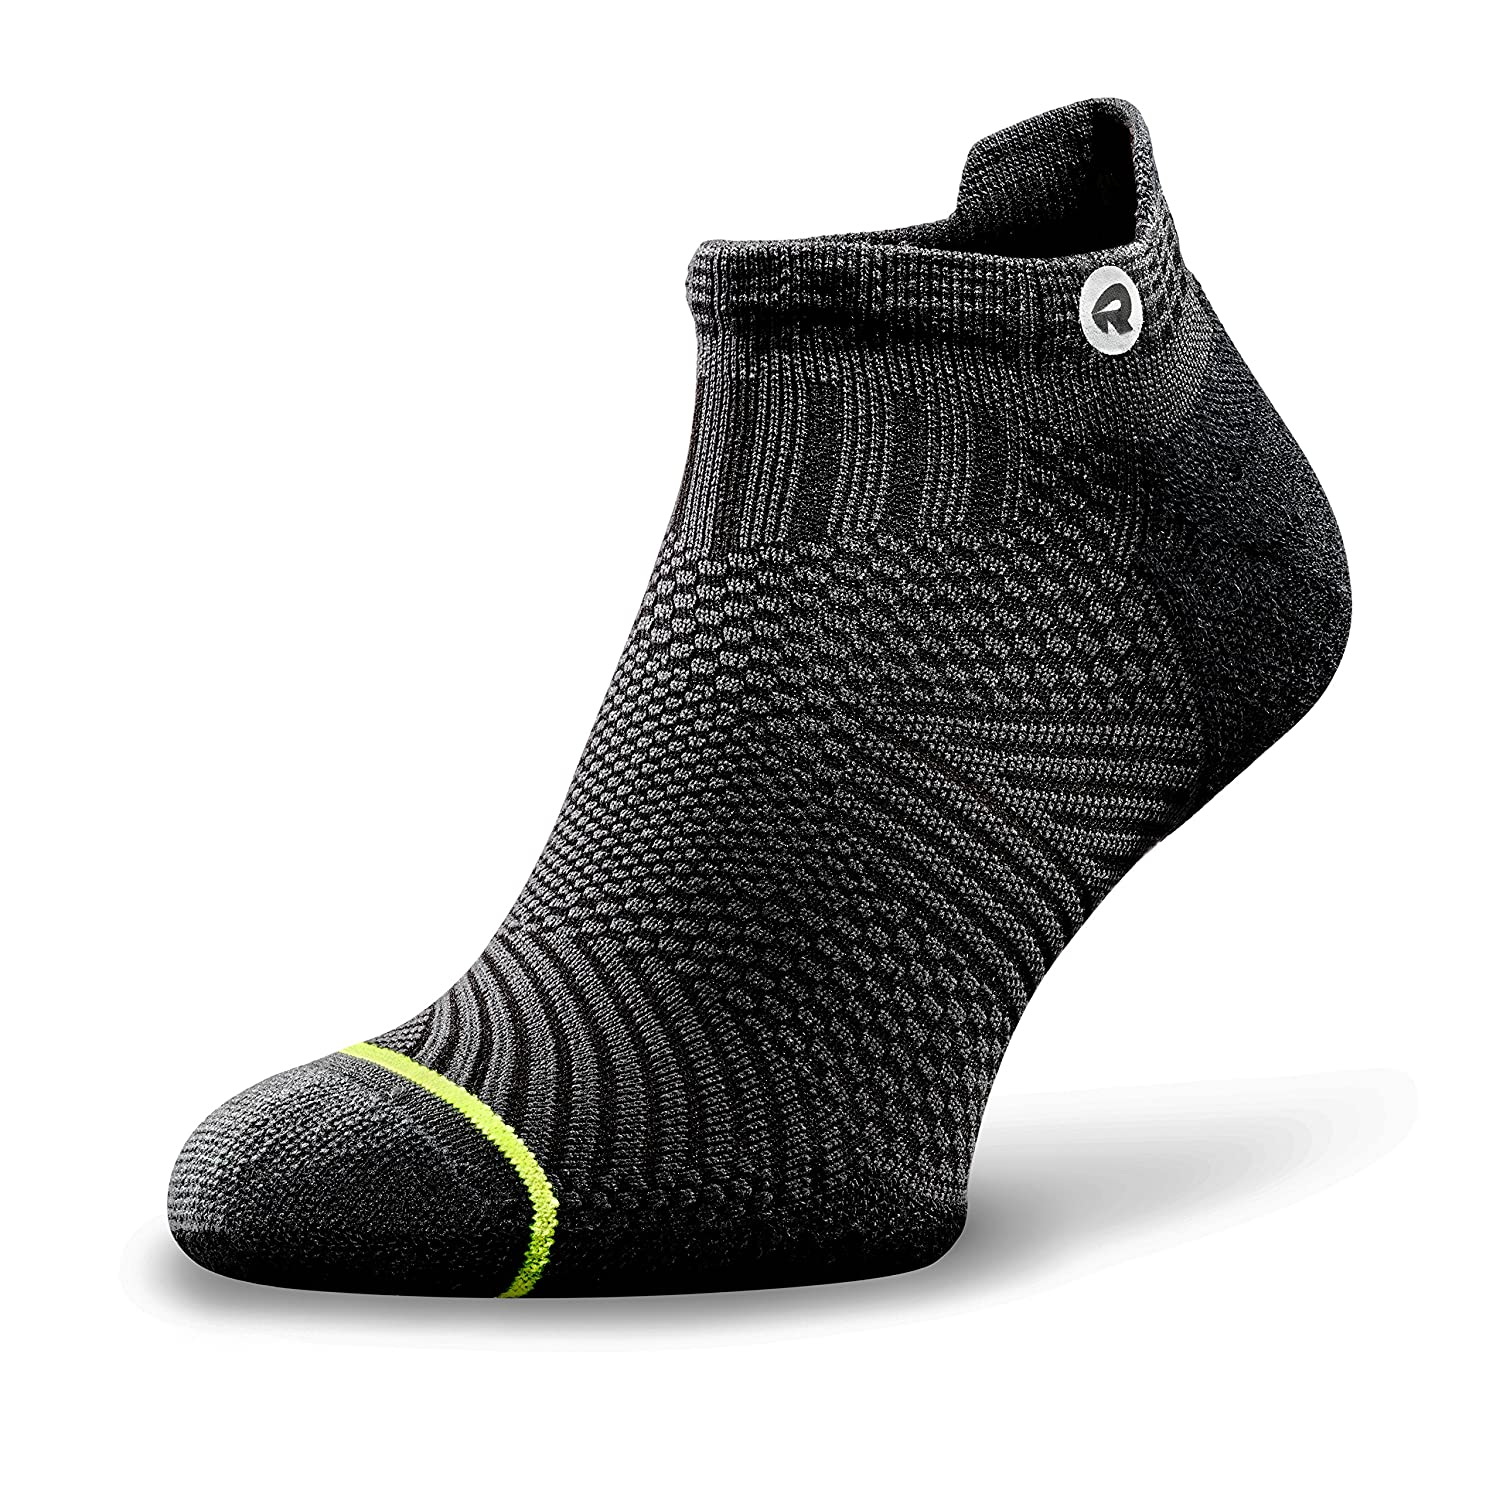 Forum on this topic: Wear the Right Socks to Battle Blisters, wear-the-right-socks-to-battle-blisters/